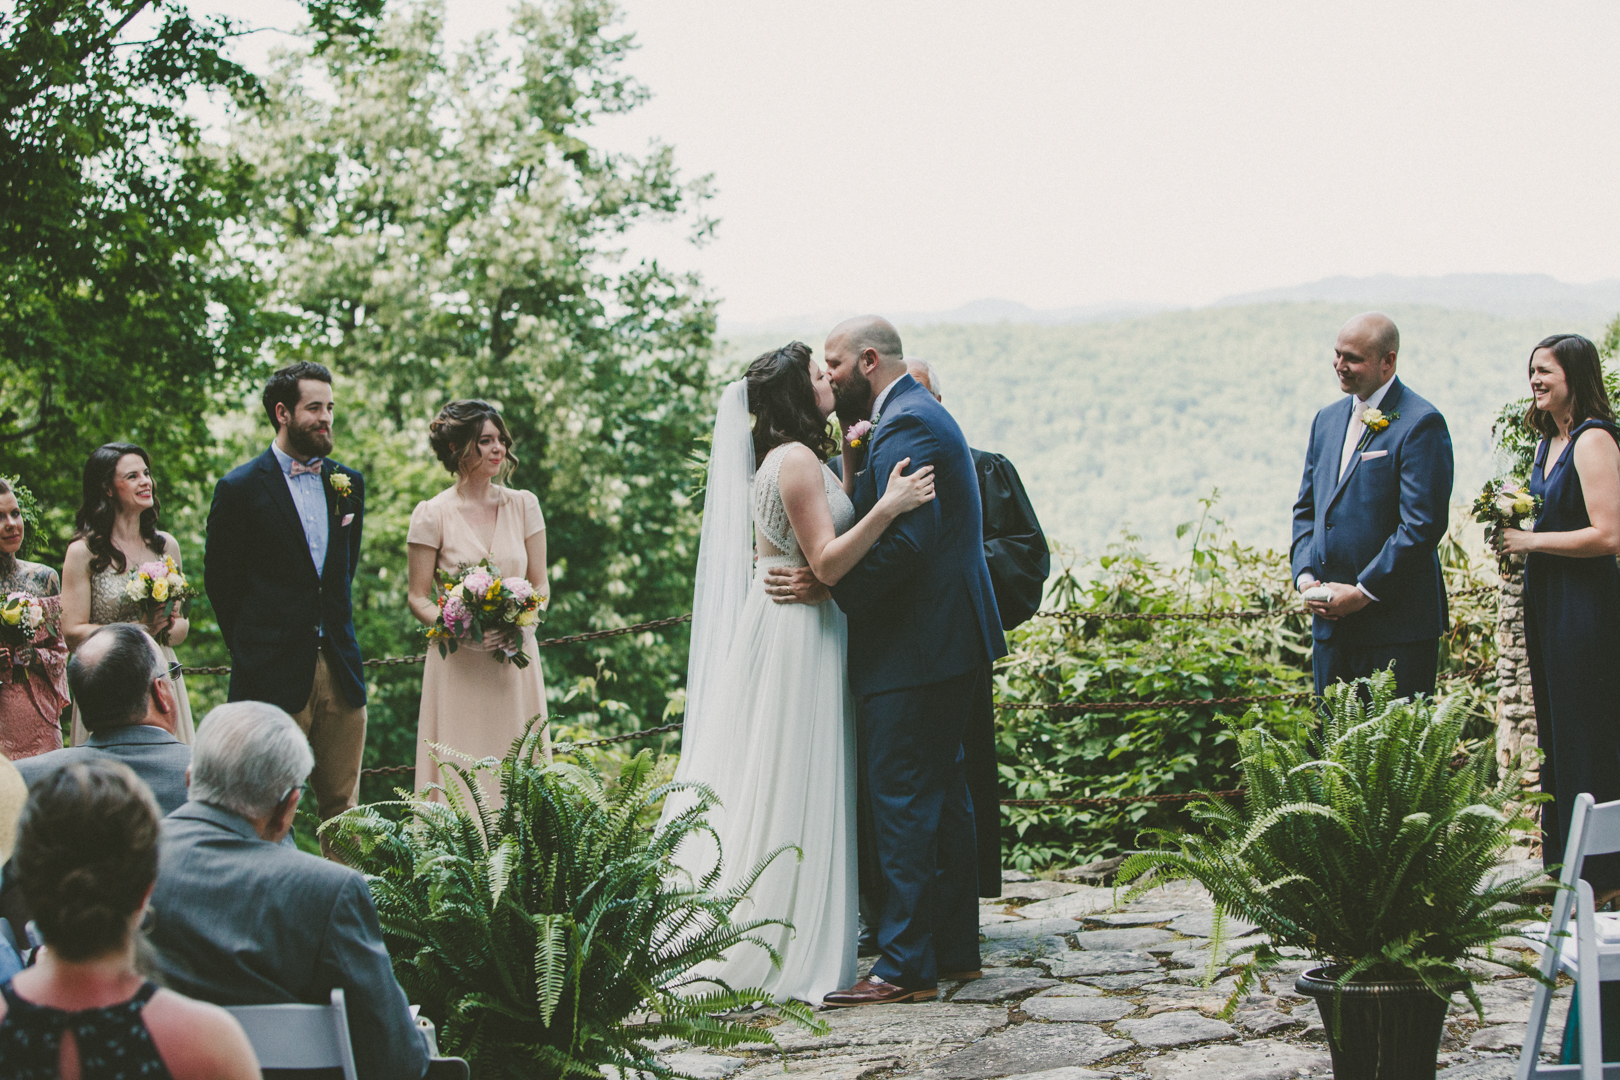 Caro&WillMarried_ConfluenceResort_blog-77.jpg